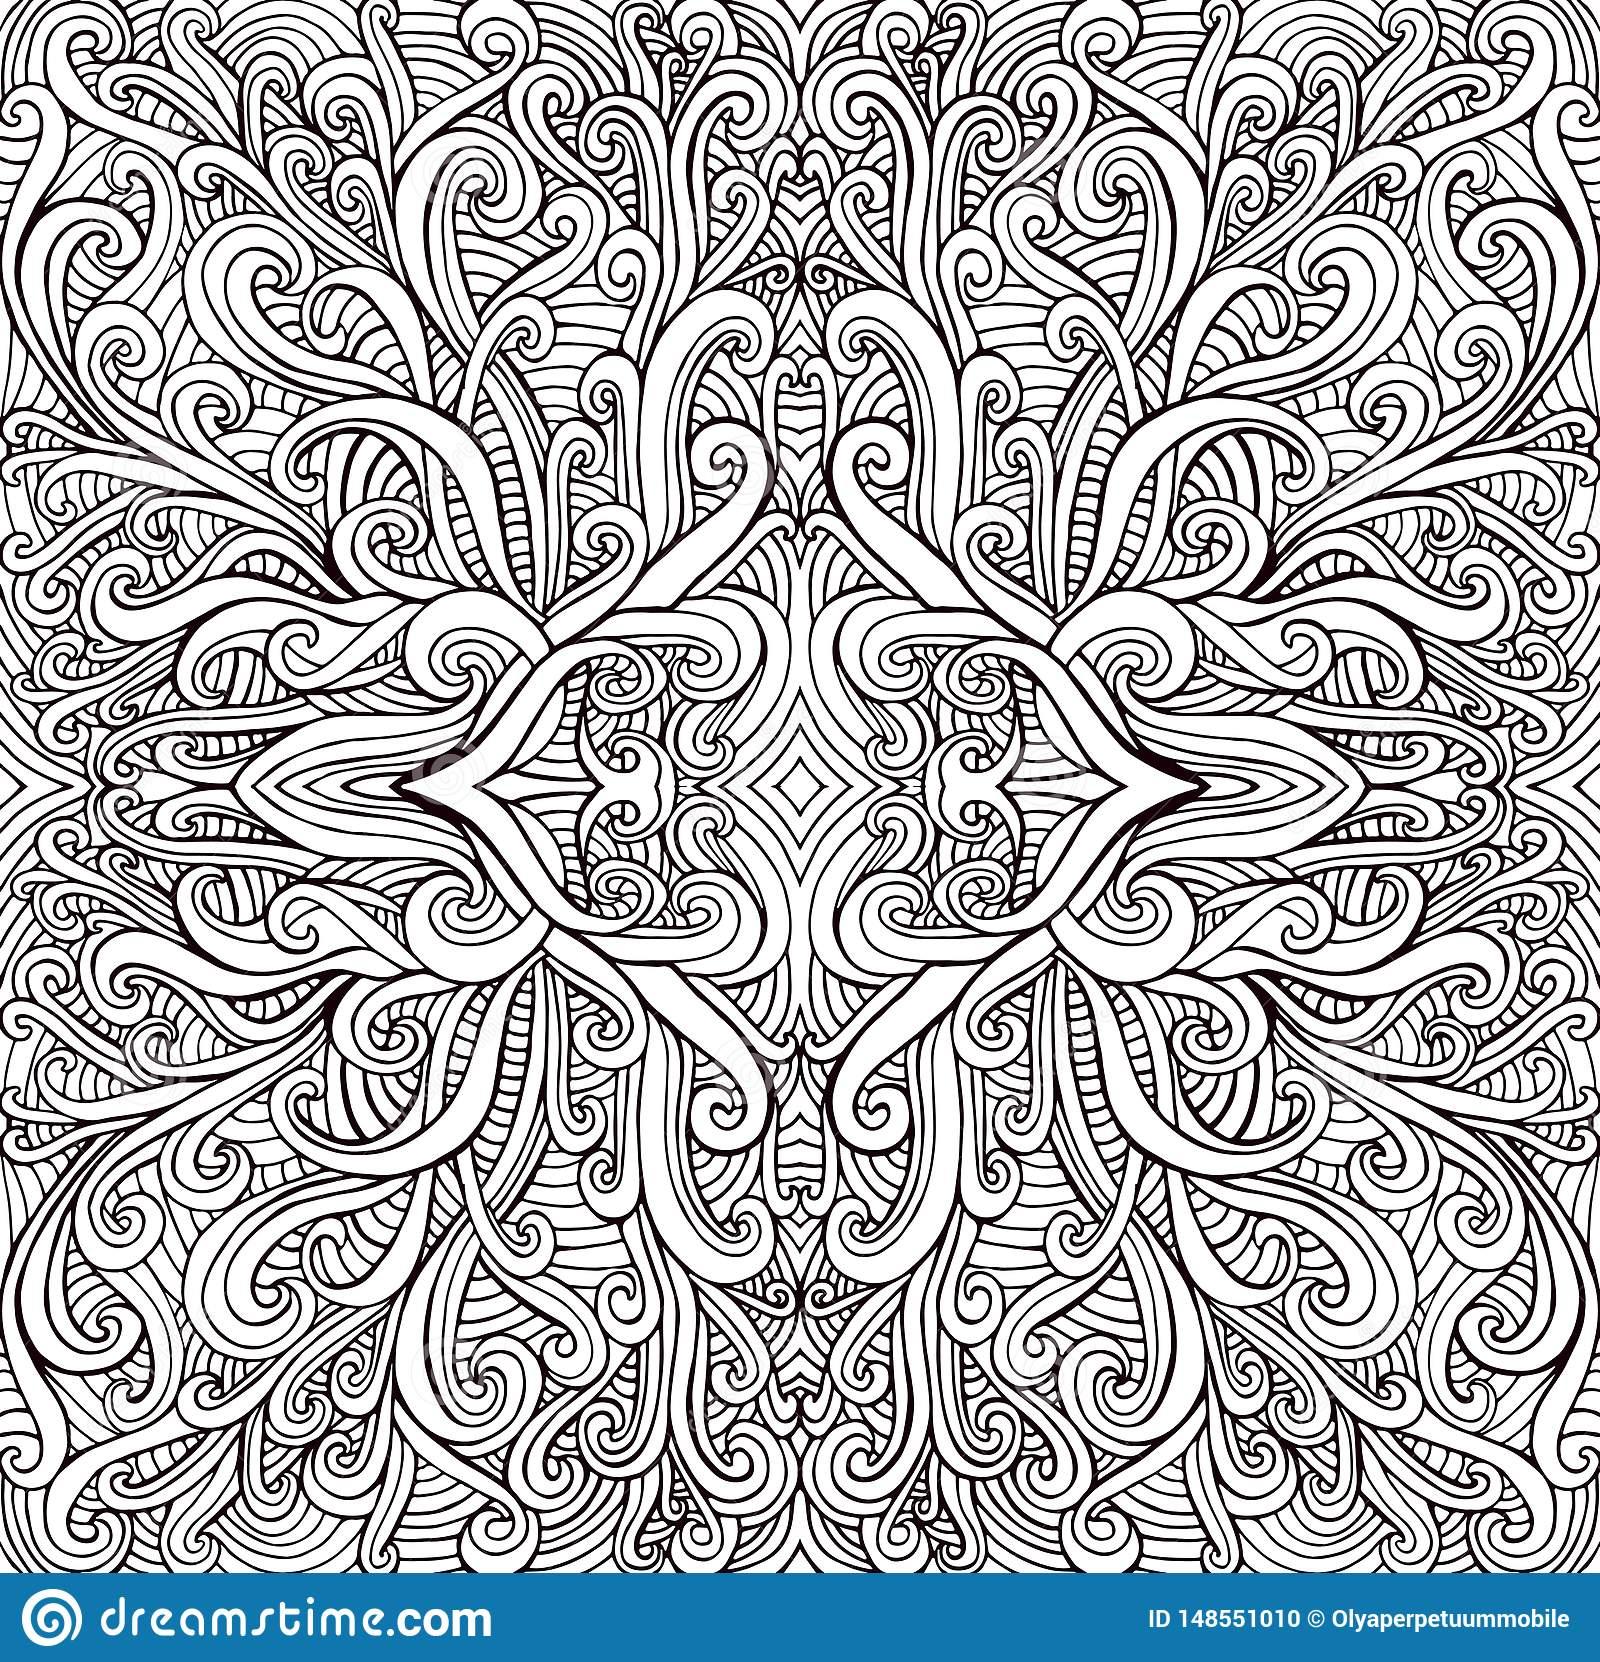 trippy coloring pages printable - Enjoy Coloring | Butterfly ... | 1662x1600